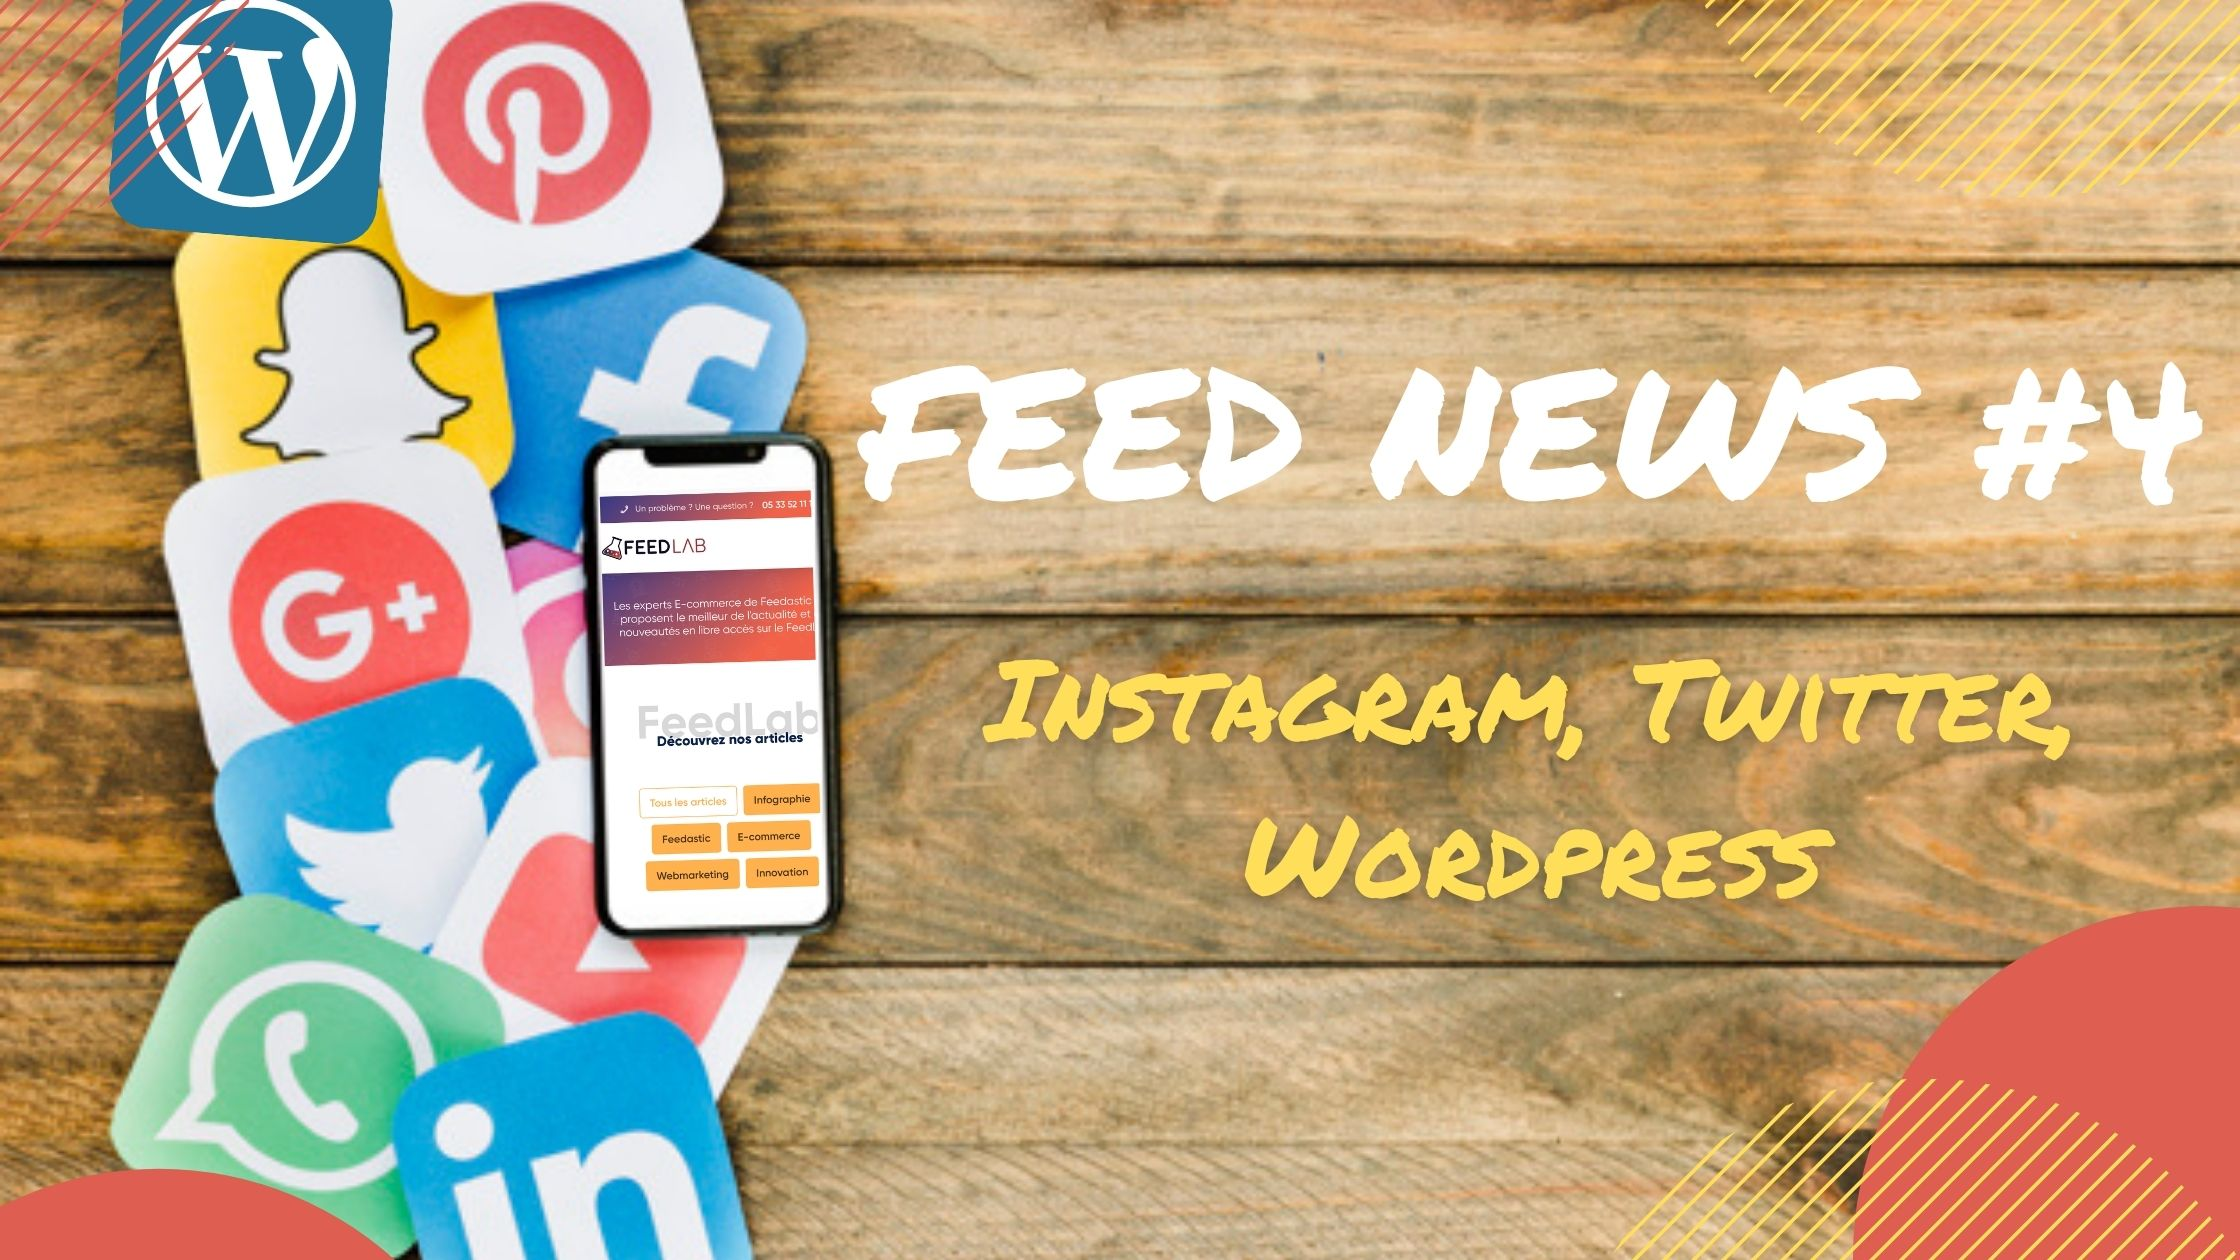 Feed News #4 Septembre : Instagram, Twitter, WordPress